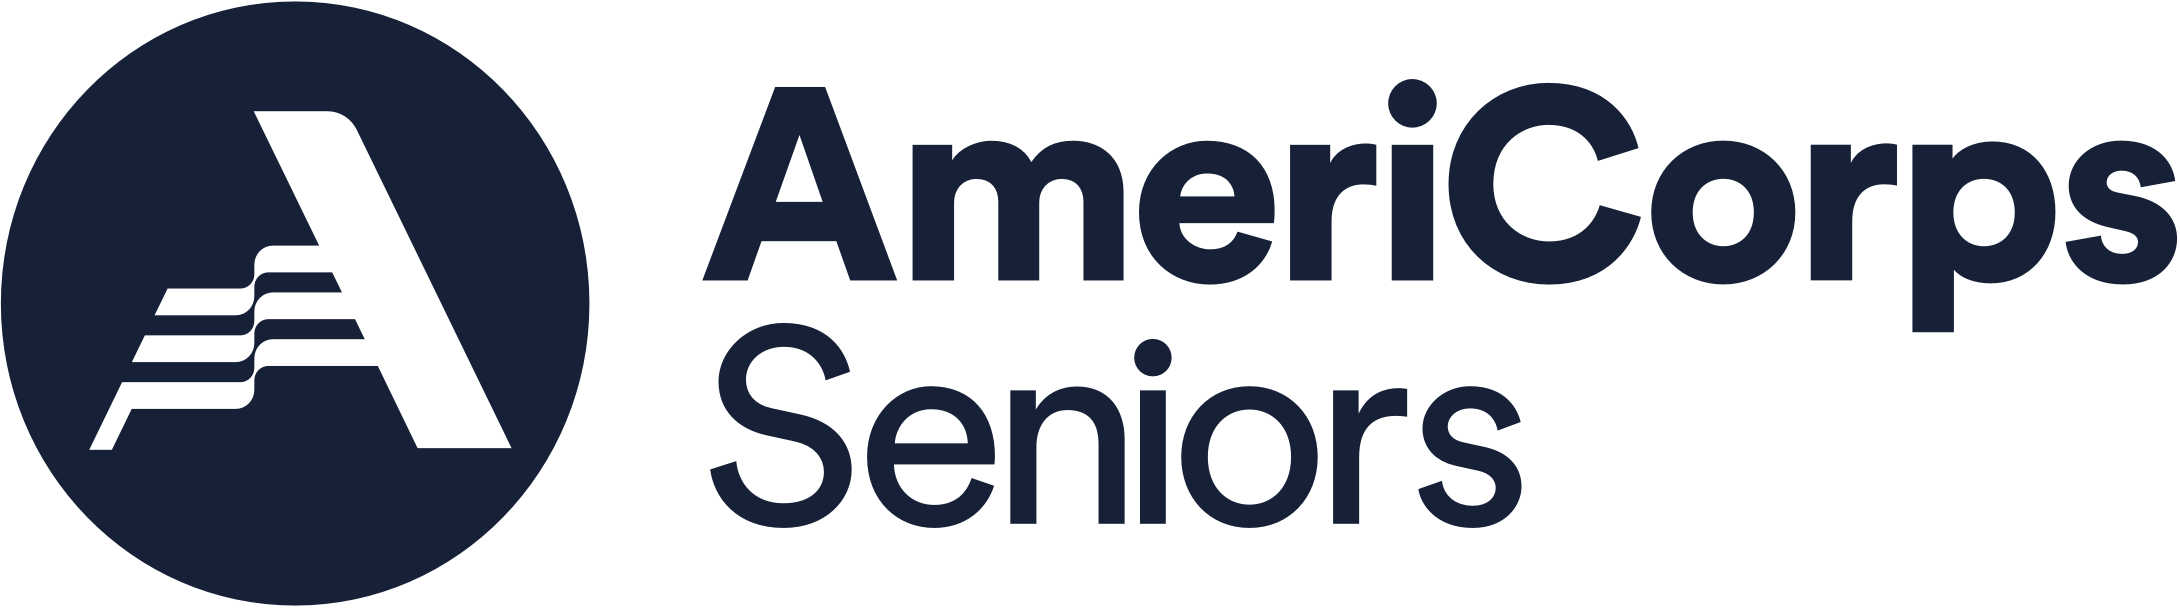 AmeriCorps logo featured in thick lettering with a navy blue color